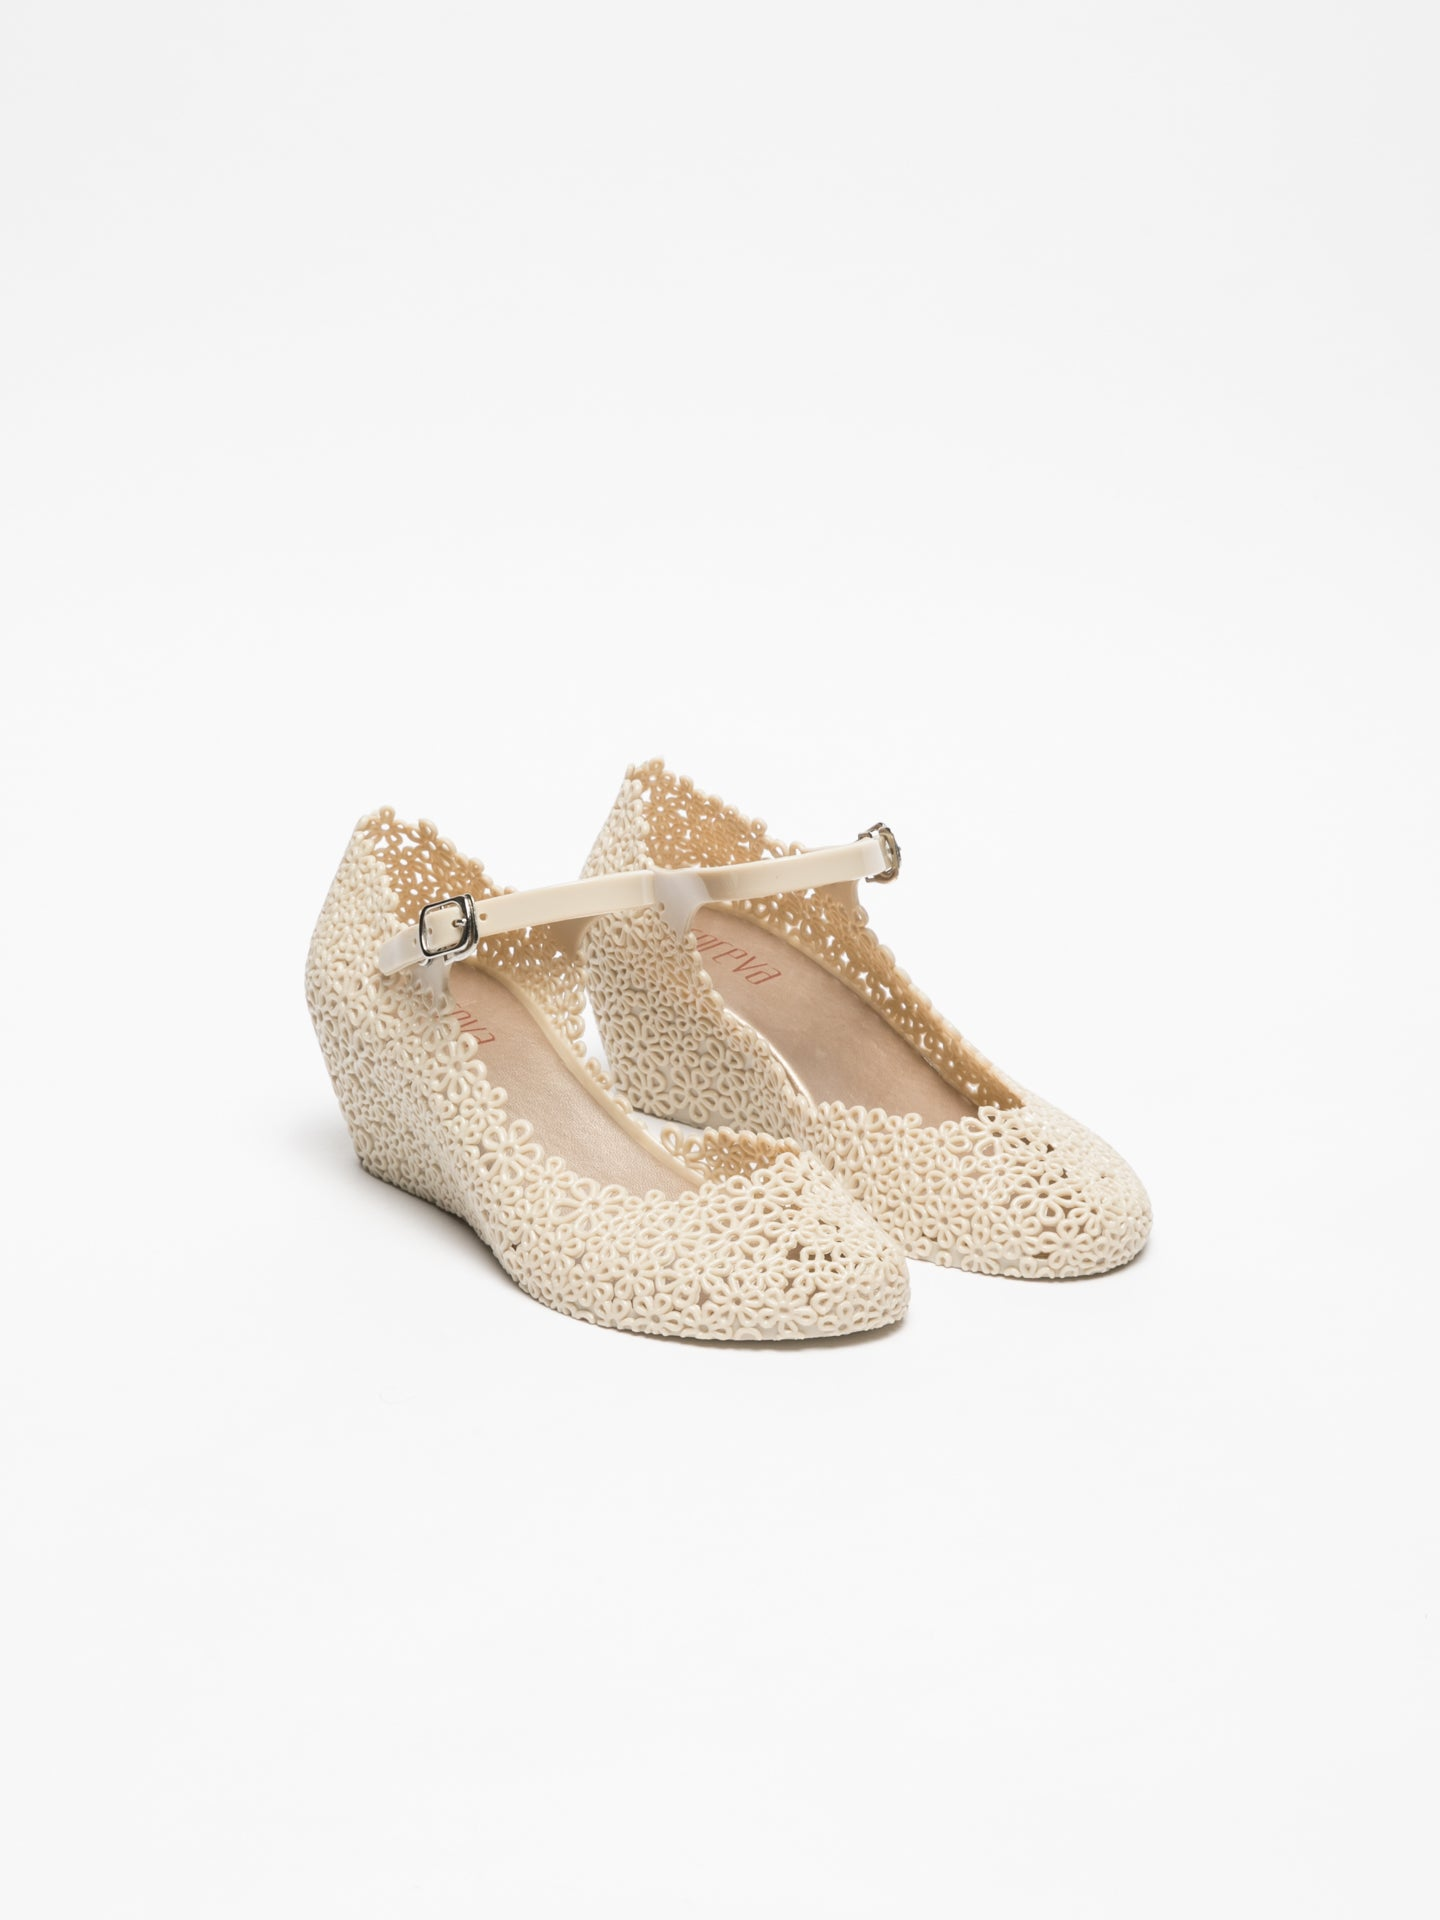 Foreva Beige Platform Shoes